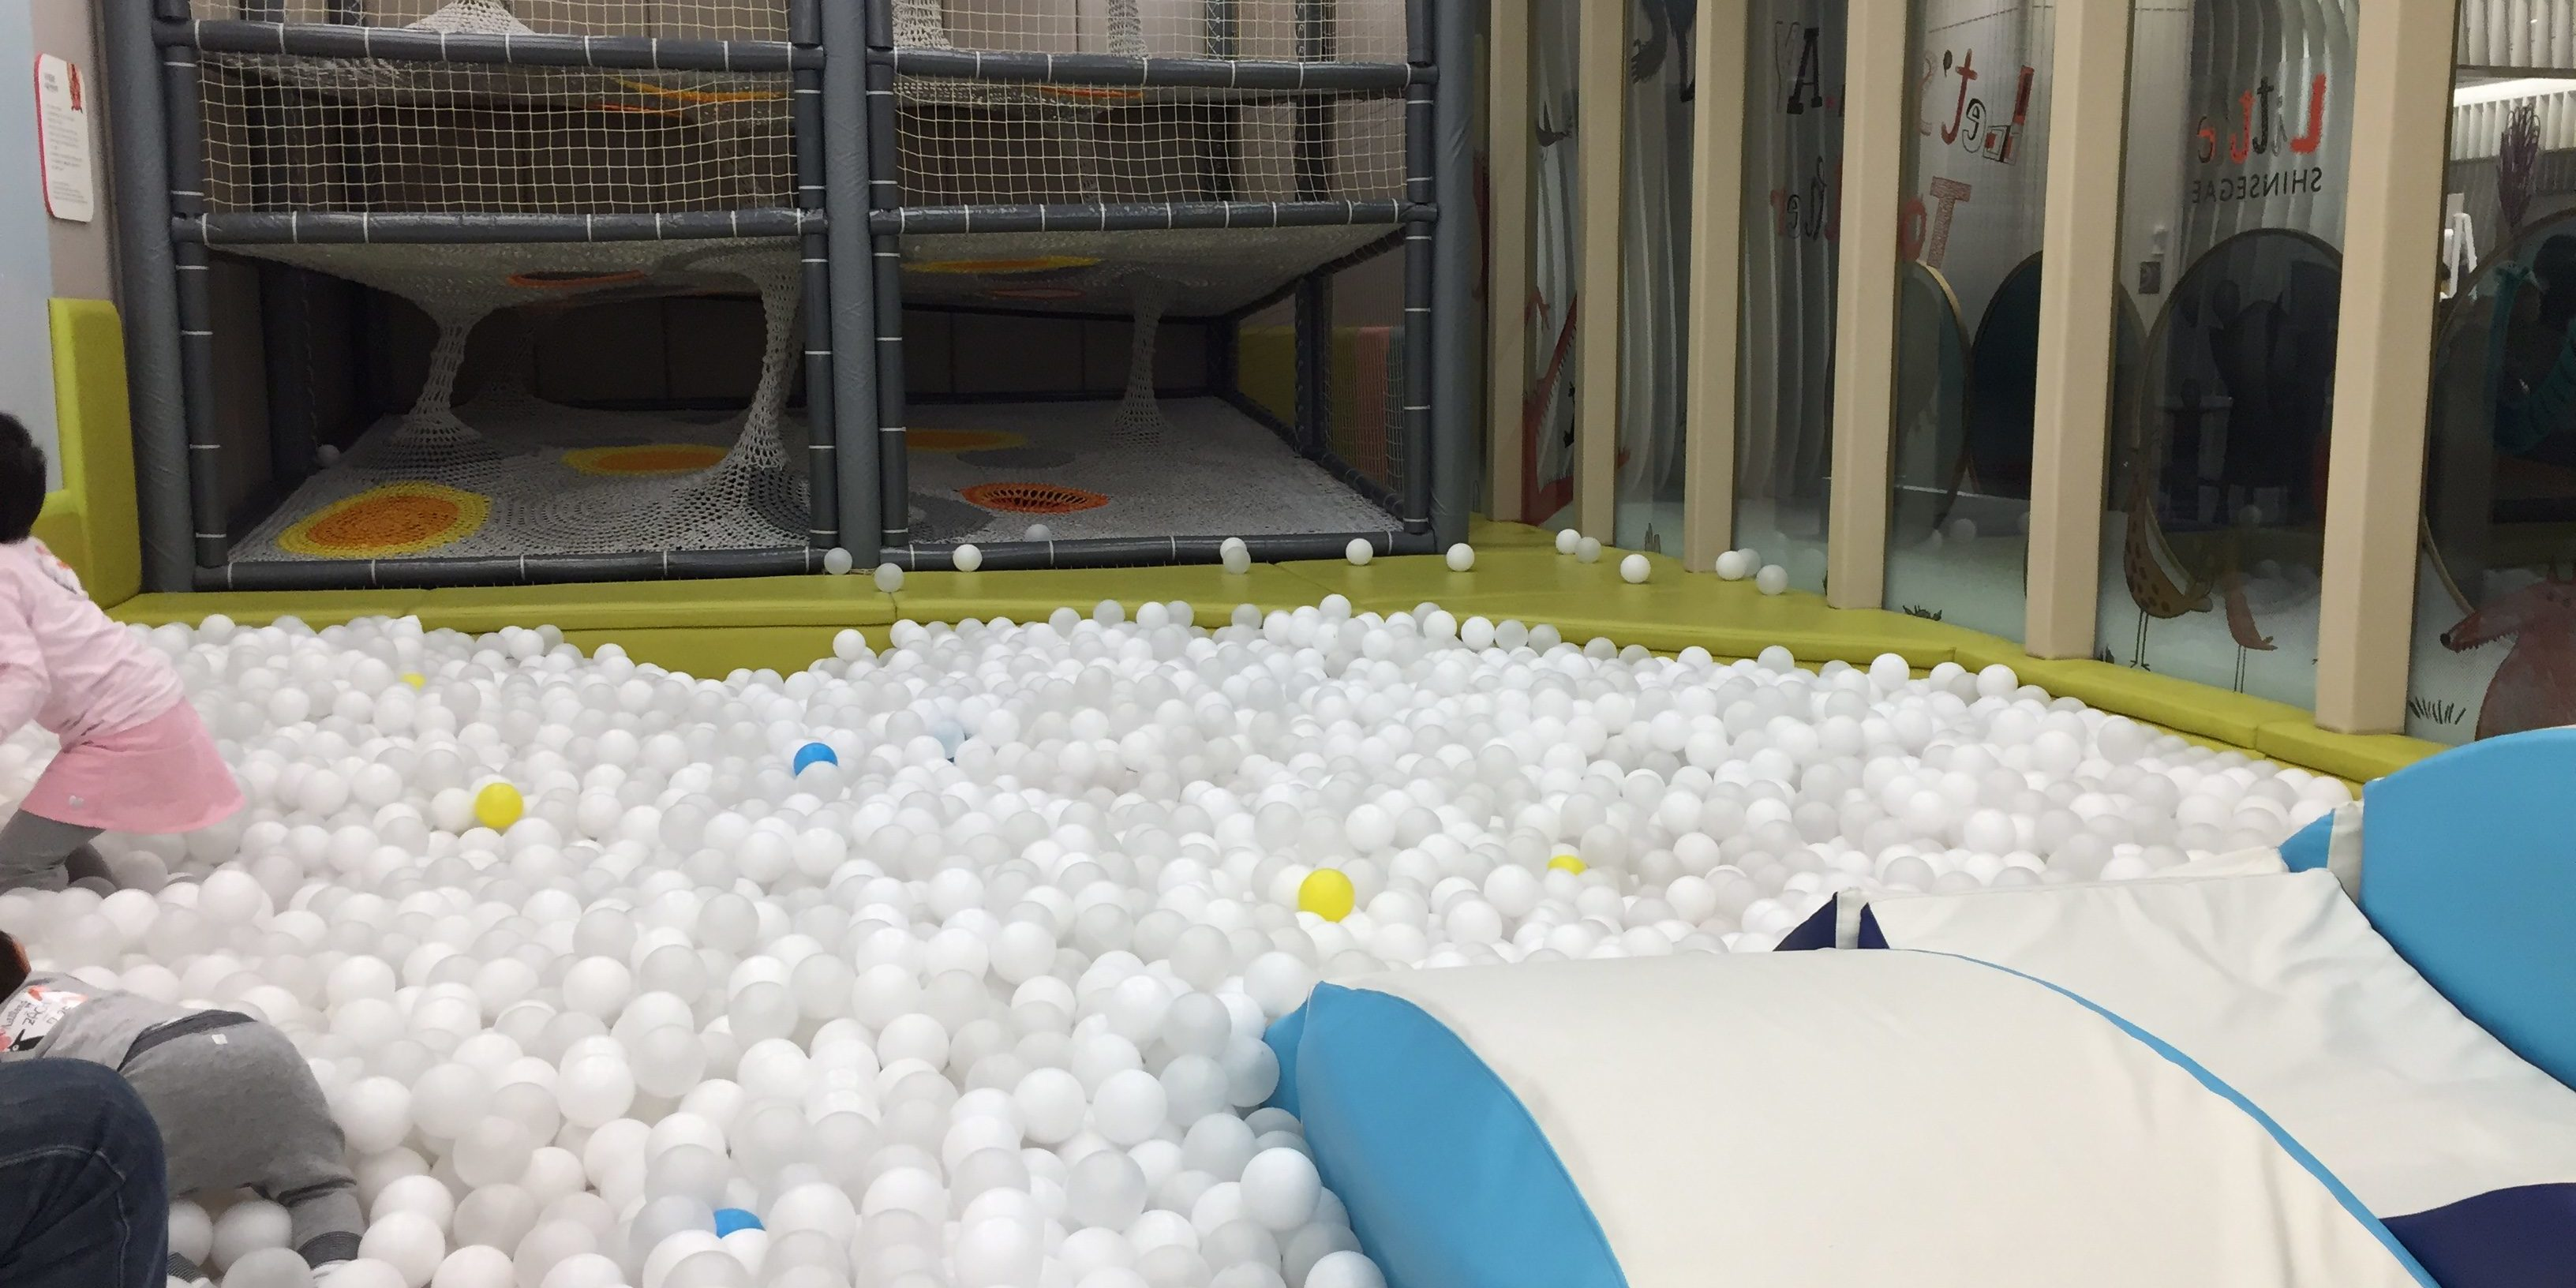 Ball pit kids cafe toddler Seoul